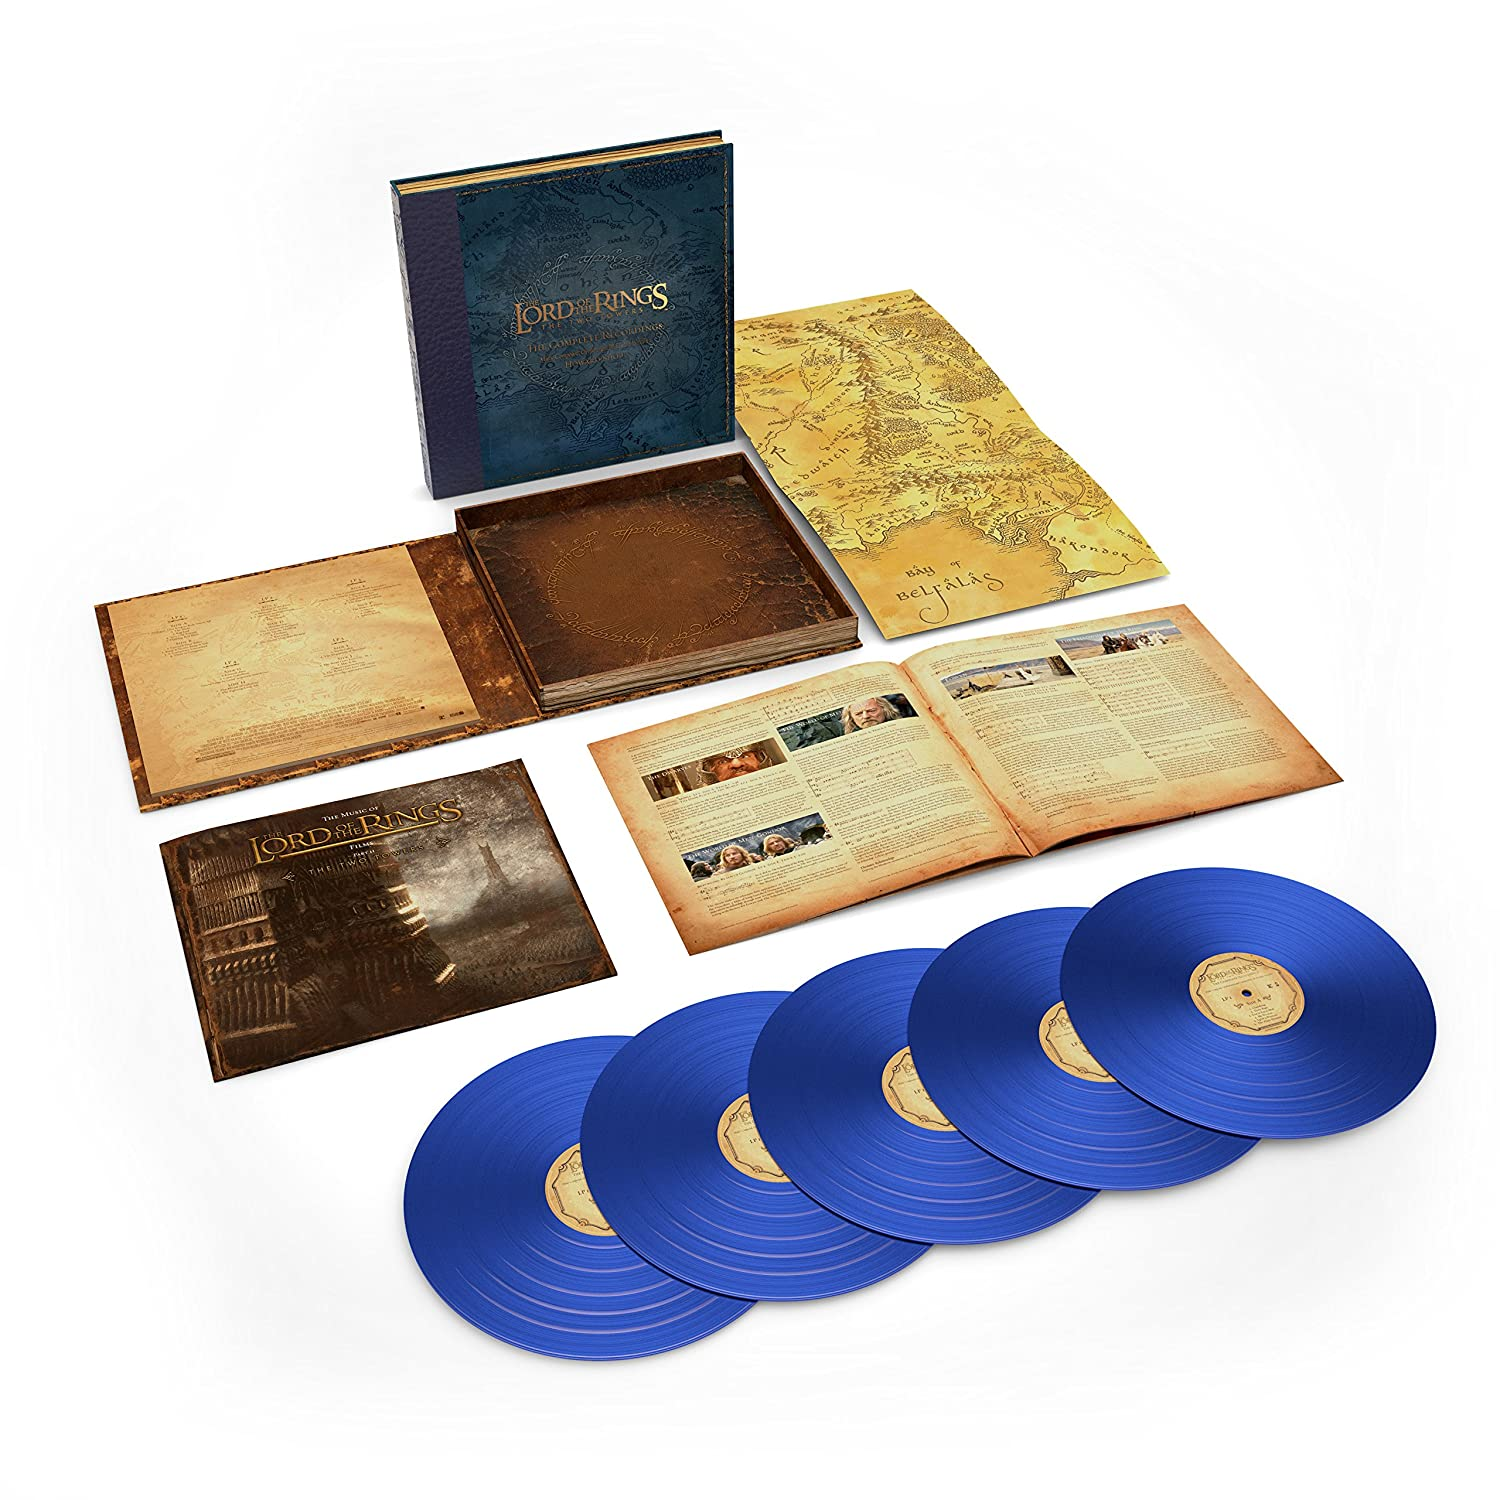 Howard Shore - The Lord Of The Rings: The Two Towers 5LP blue vinyl box